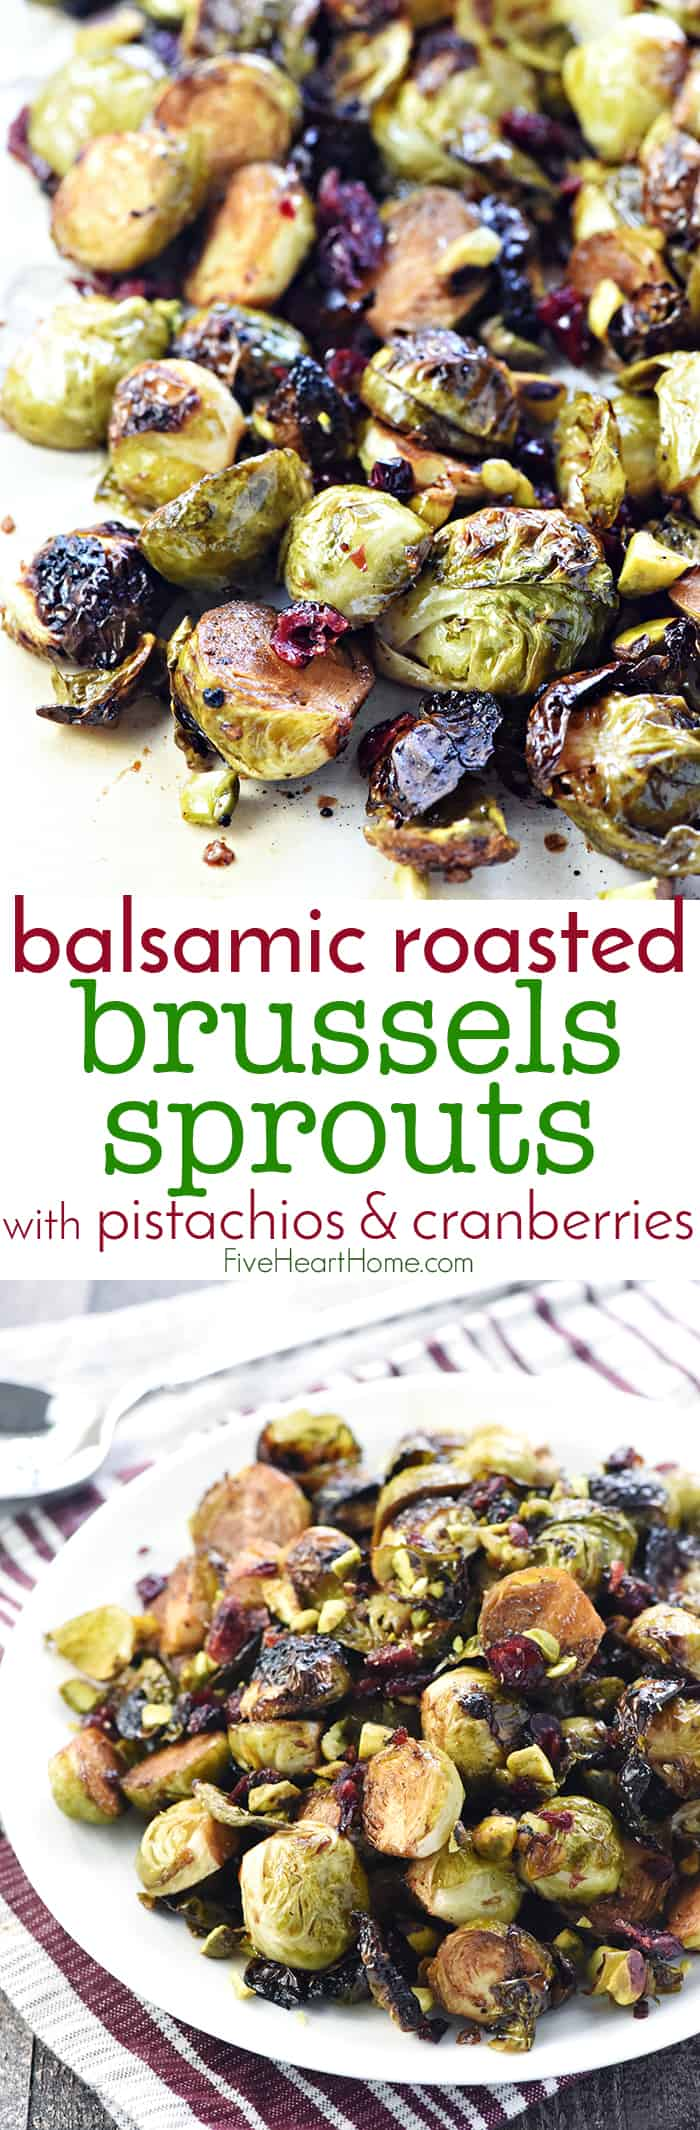 Balsamic Roasted Brussels Sprouts with Pistachios & Cranberries ~ crispy and addictive, this special holiday side dish recipe is perfect for Thanksgiving or Christmas but also easy enough for everyday! | FiveHeartHome.com